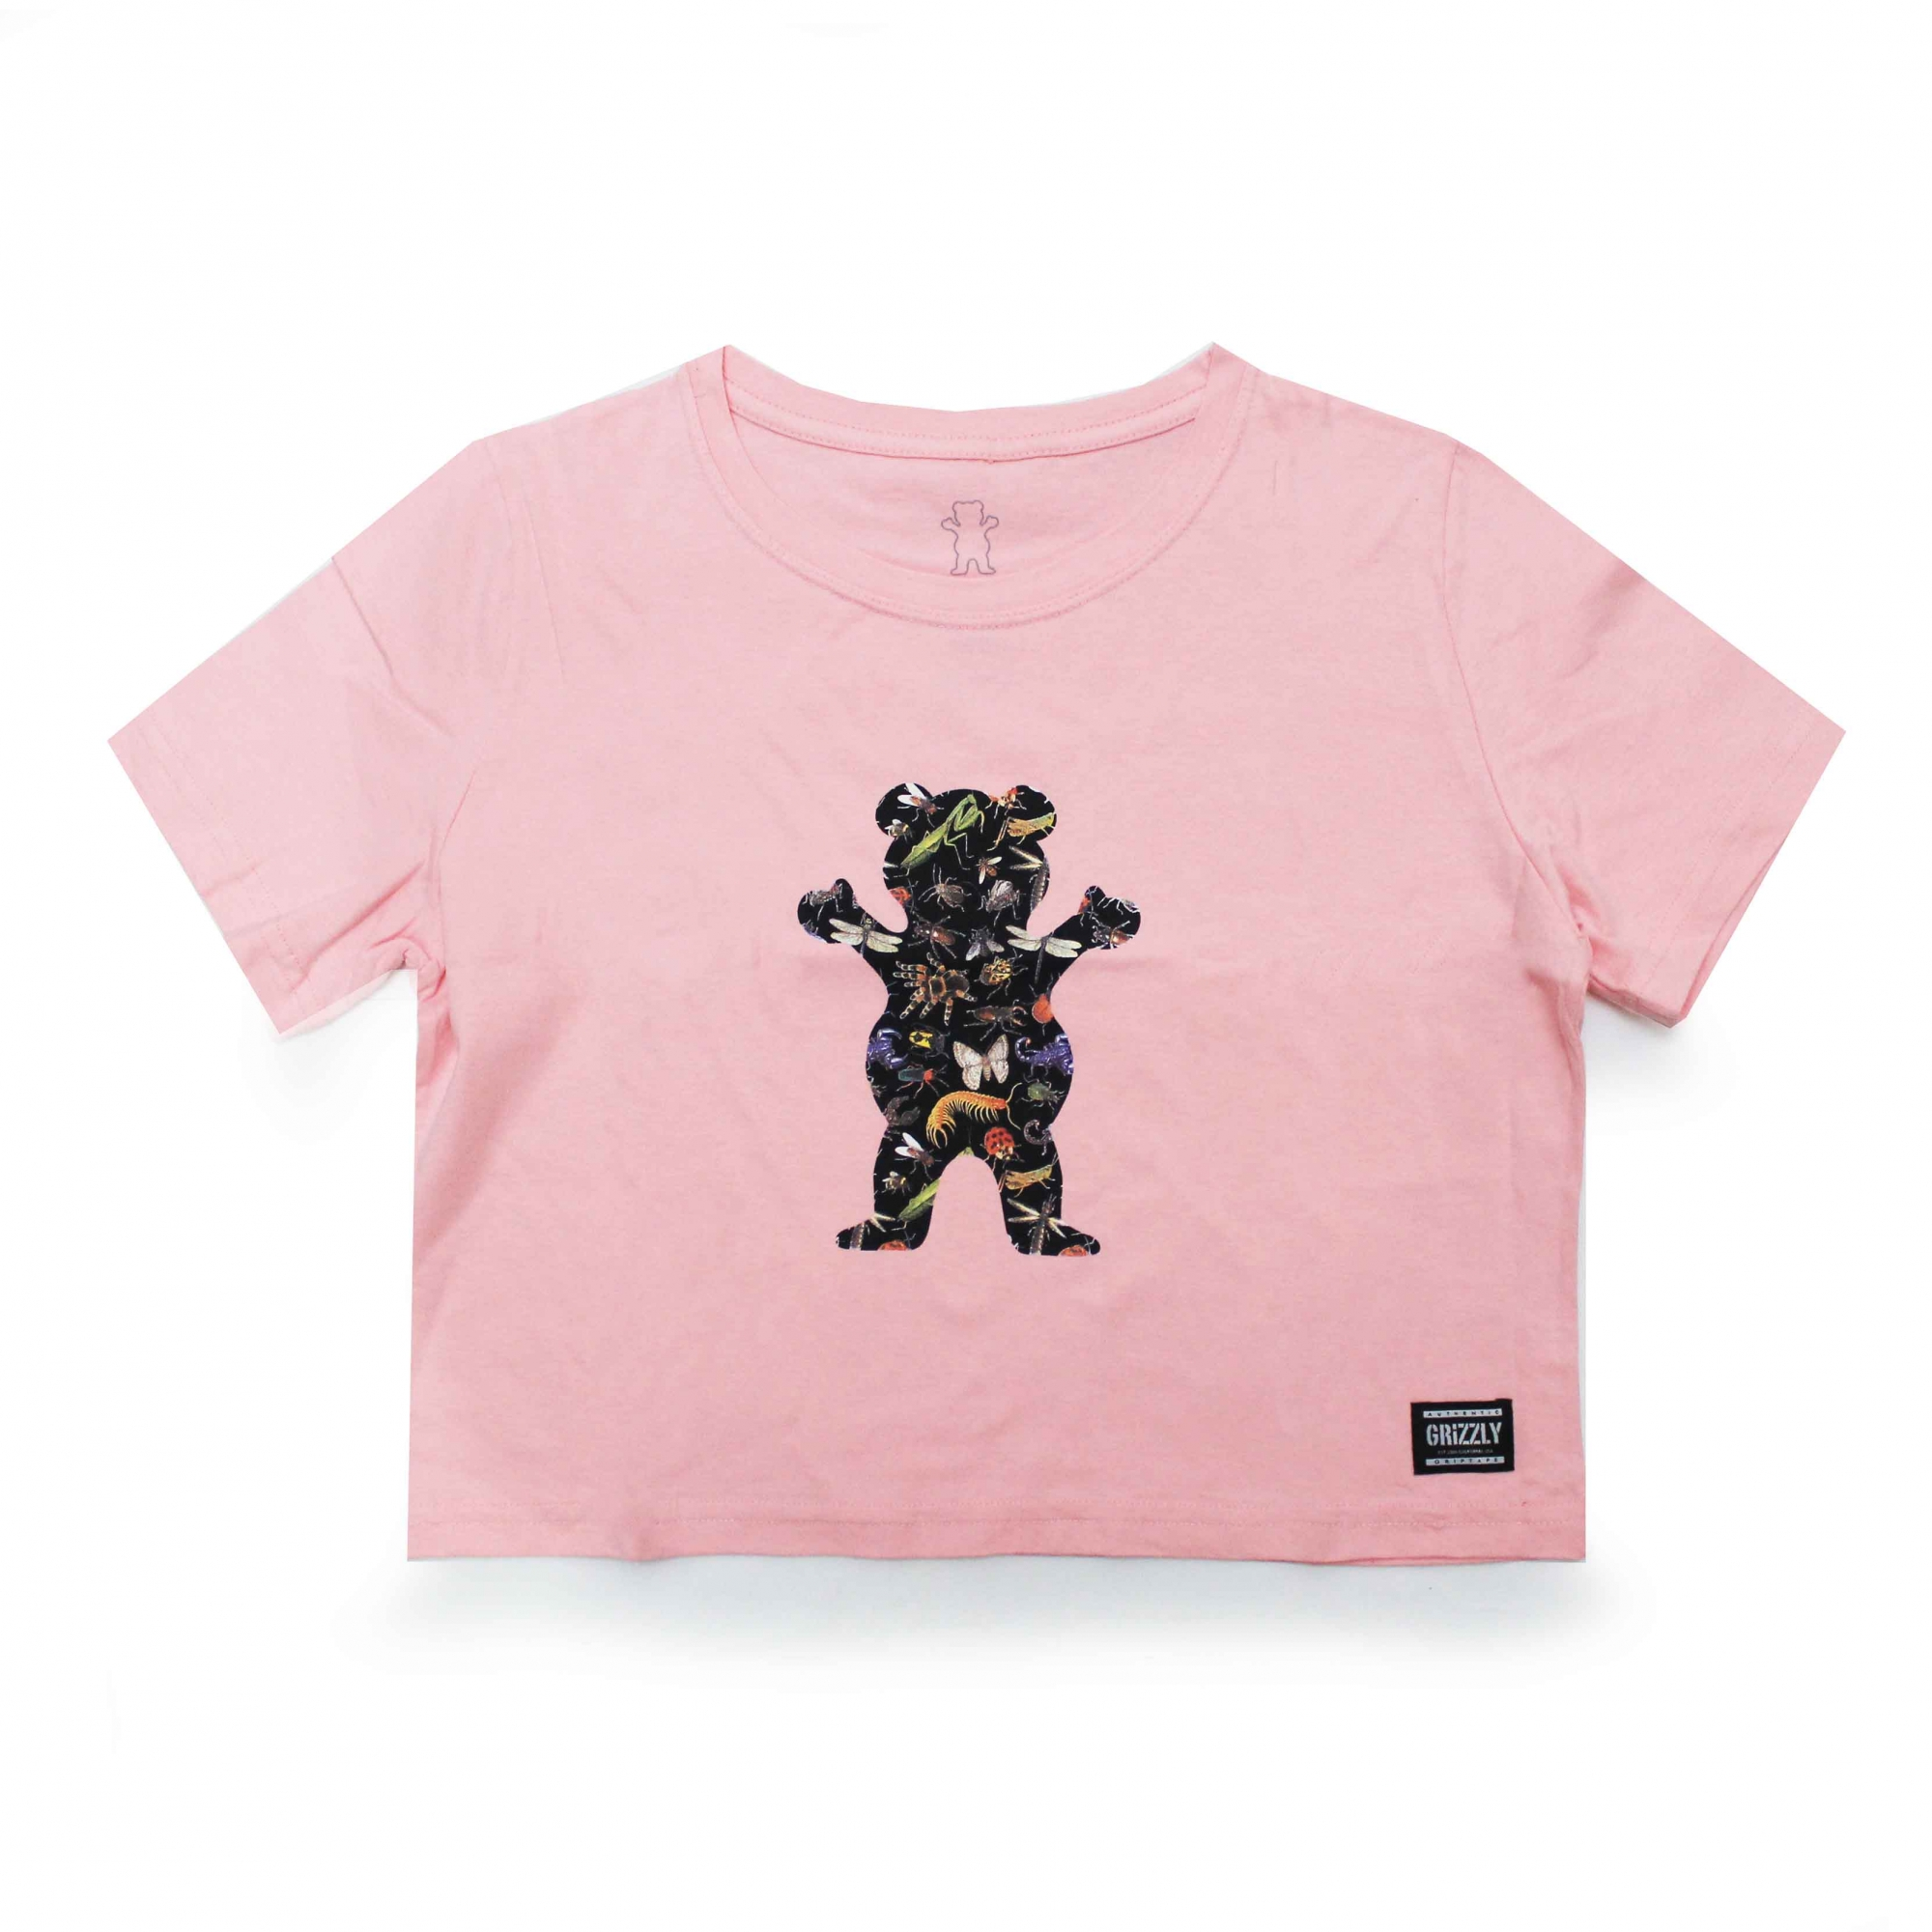 Cropped Grizzly Boo Bugs - Rosa